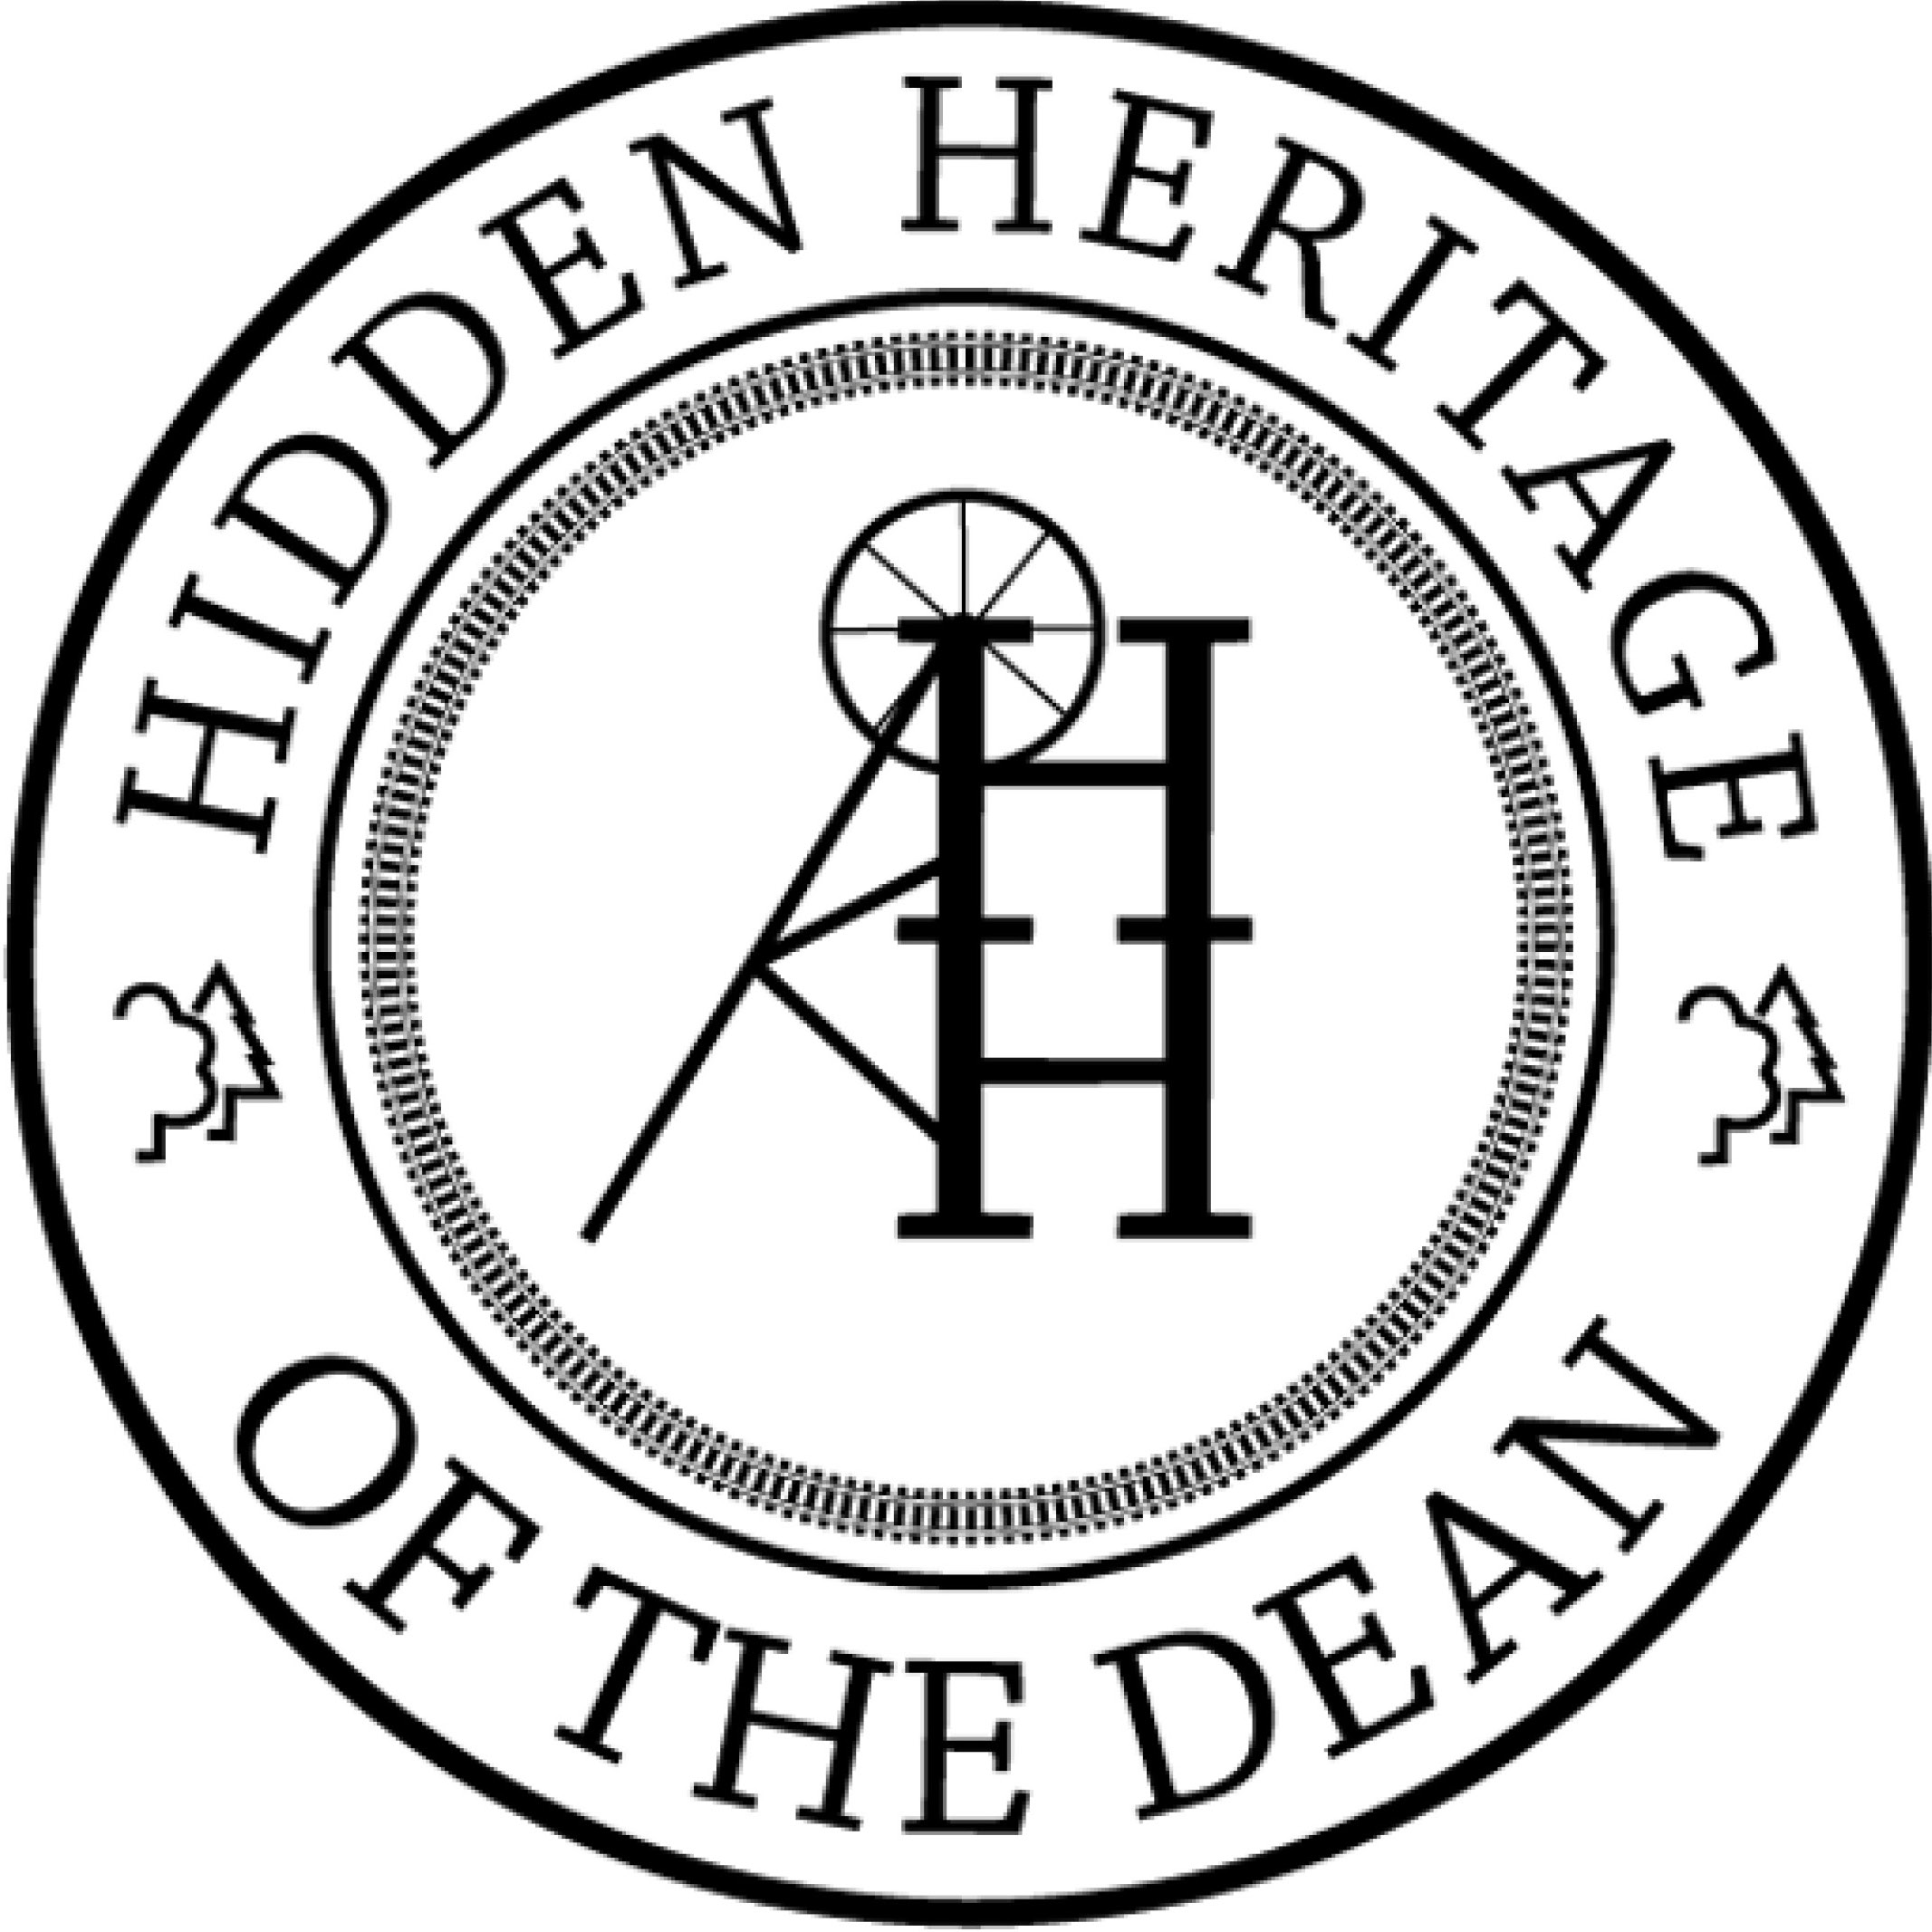 Forest of Dean Hidden Heritage app